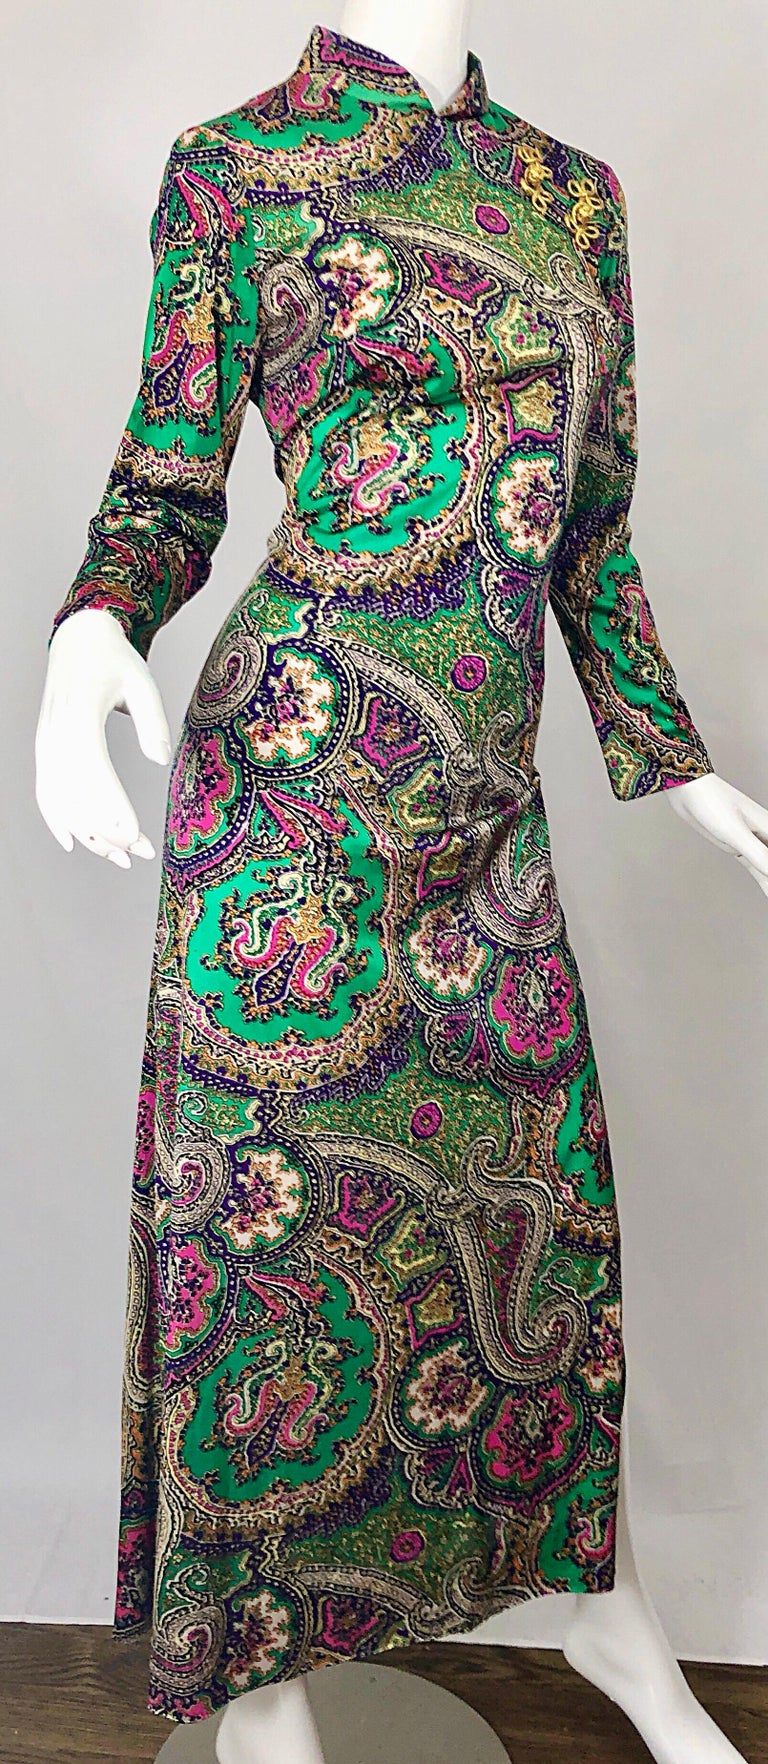 1970s Cheongsam Inspired Colorful Paisley Print Jersey Long Sleeve Maxi Dress For Sale 6